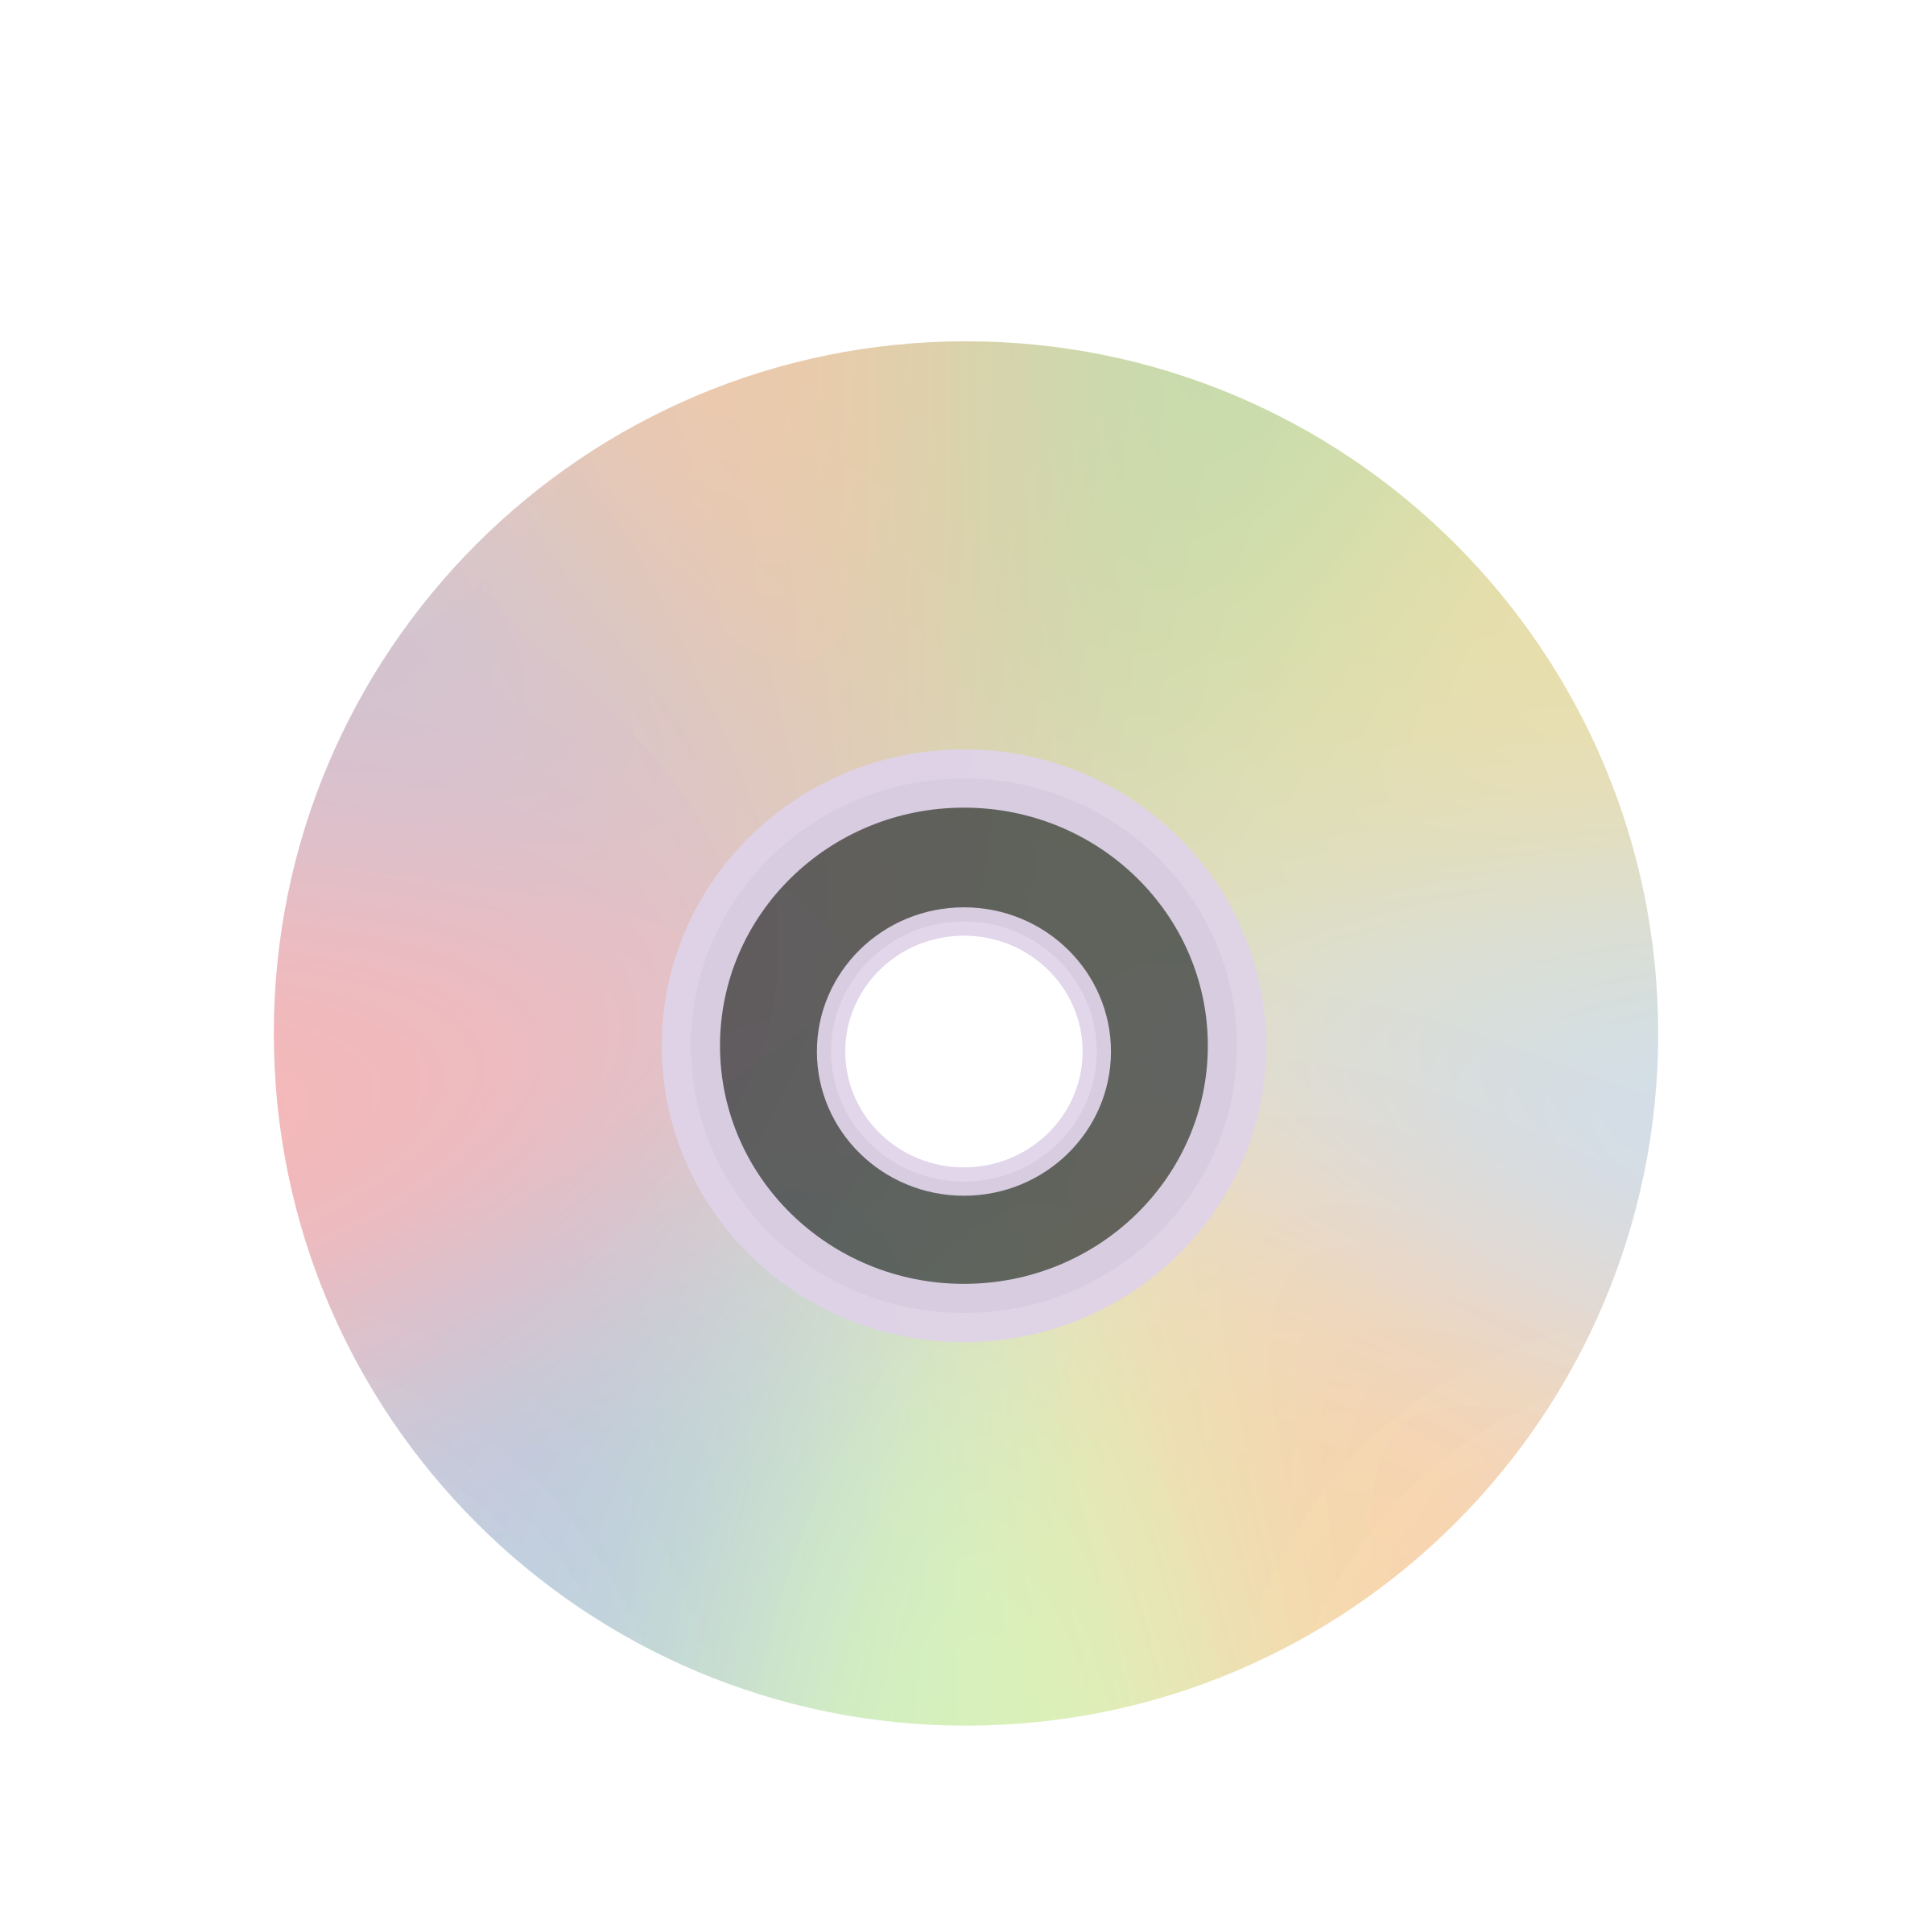 cdrom by chatard